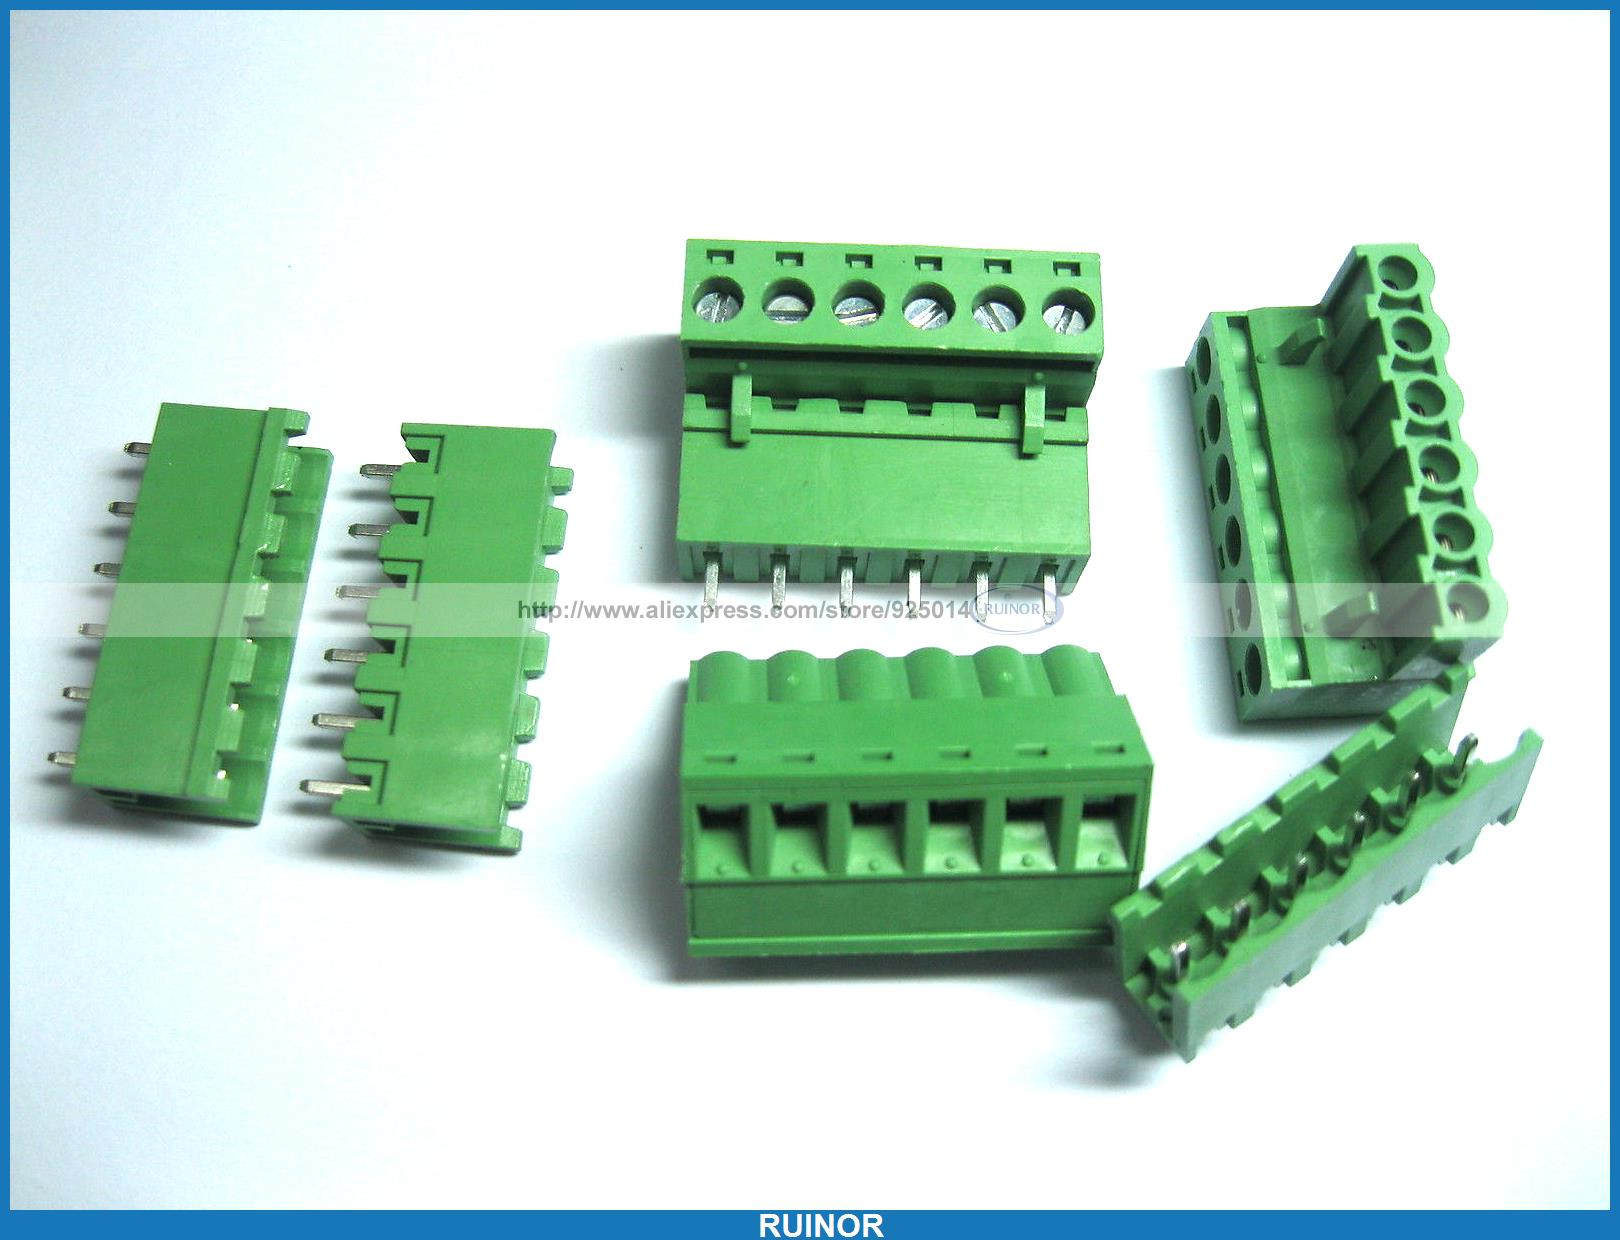 100 Pcs Green 6 Pin 5 08mm Screw Terminal Block Connector Pluggable Type сандалии betsy 977784 01 01 черный р 37 ru